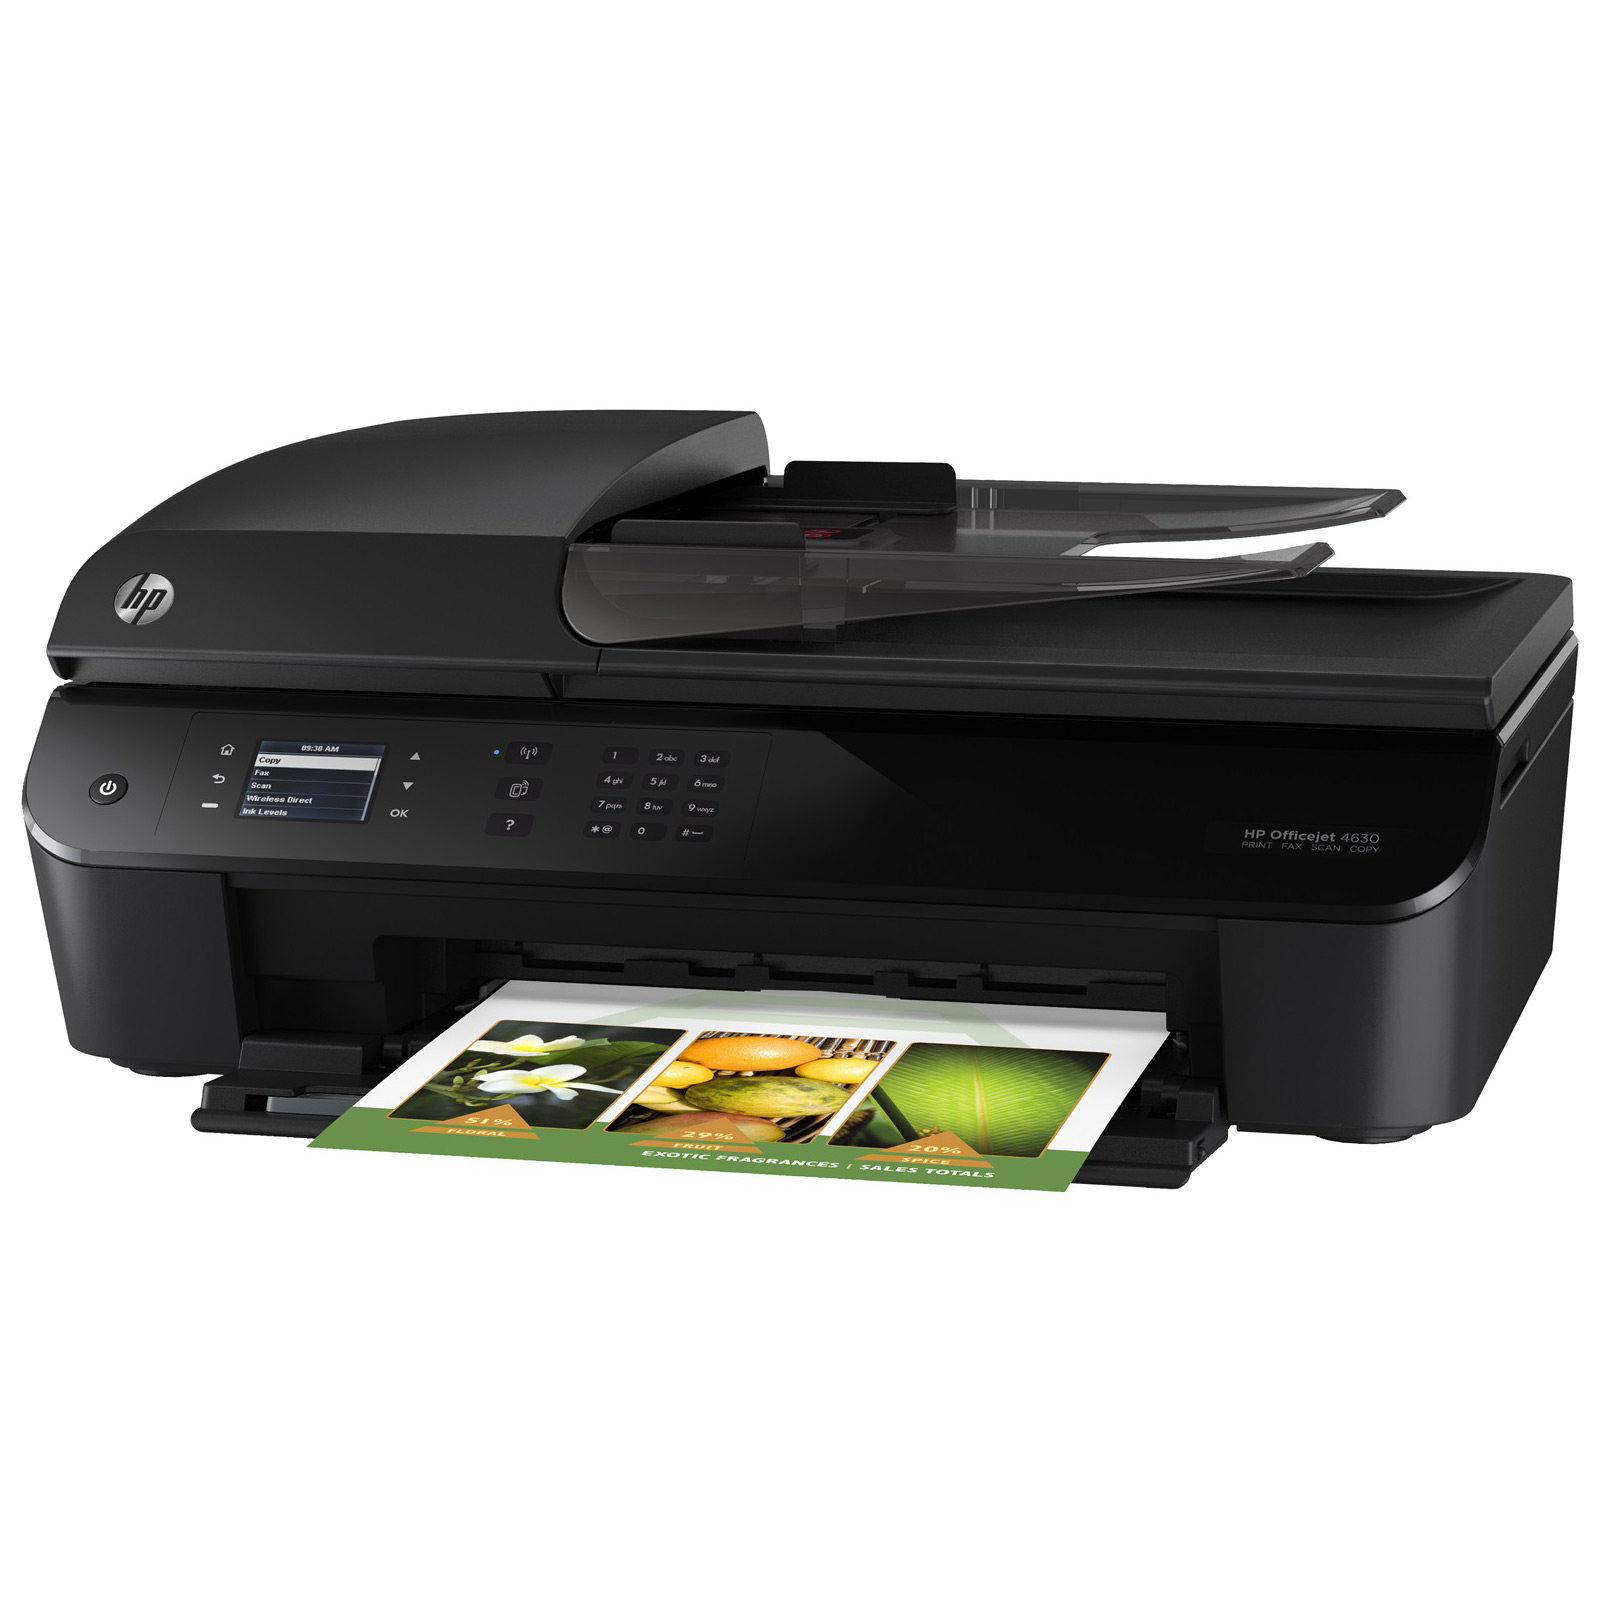 hp officejet 4630 imprimante multifonctions jet d 39 encre. Black Bedroom Furniture Sets. Home Design Ideas